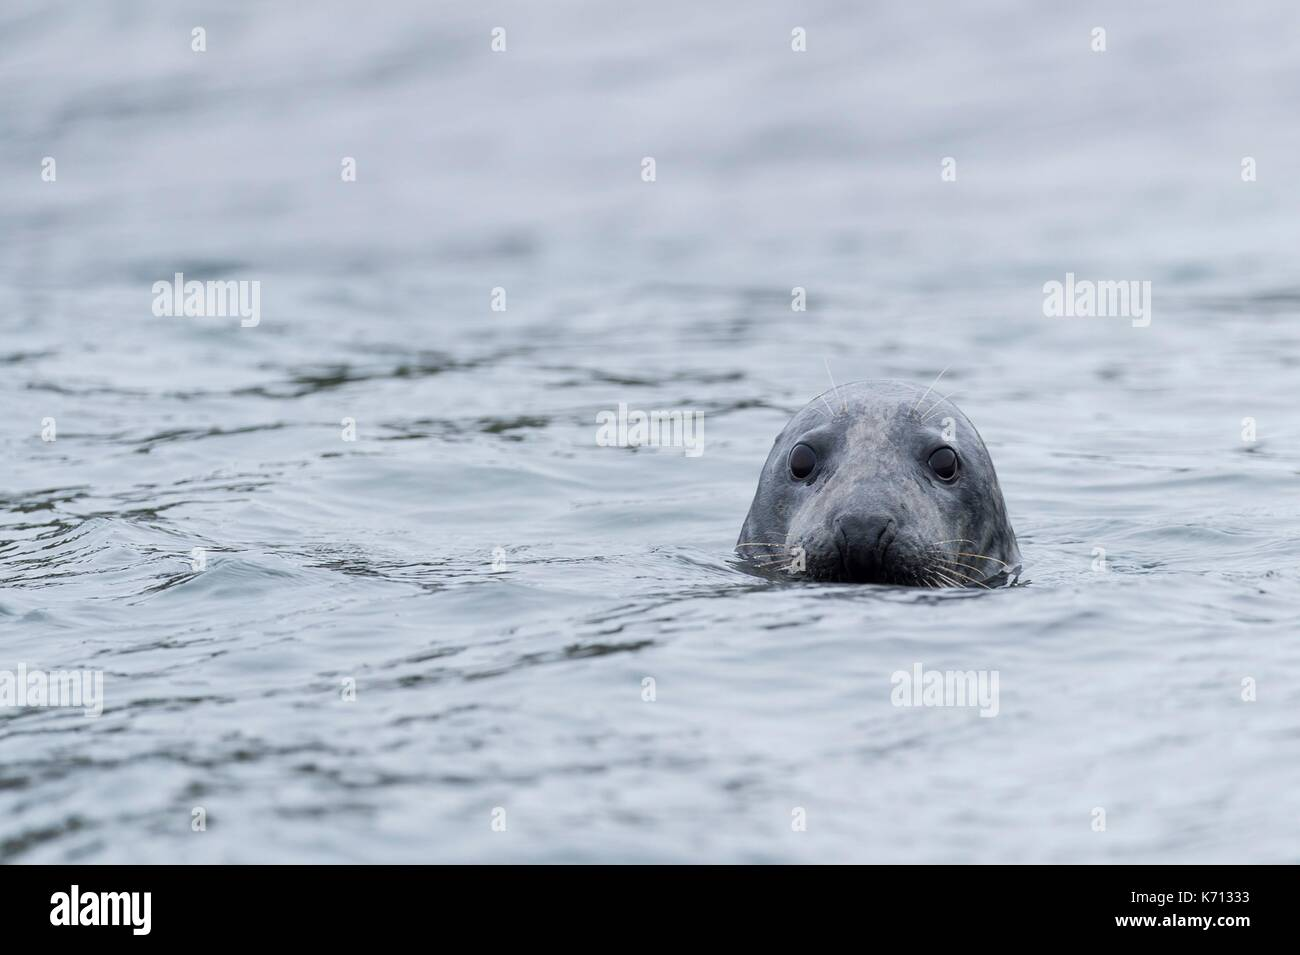 United Kingdom, Northumberland, Seahouse, Farne island, Head of a grey seal (Halichoerus grypus) emerging from the water - Stock Image